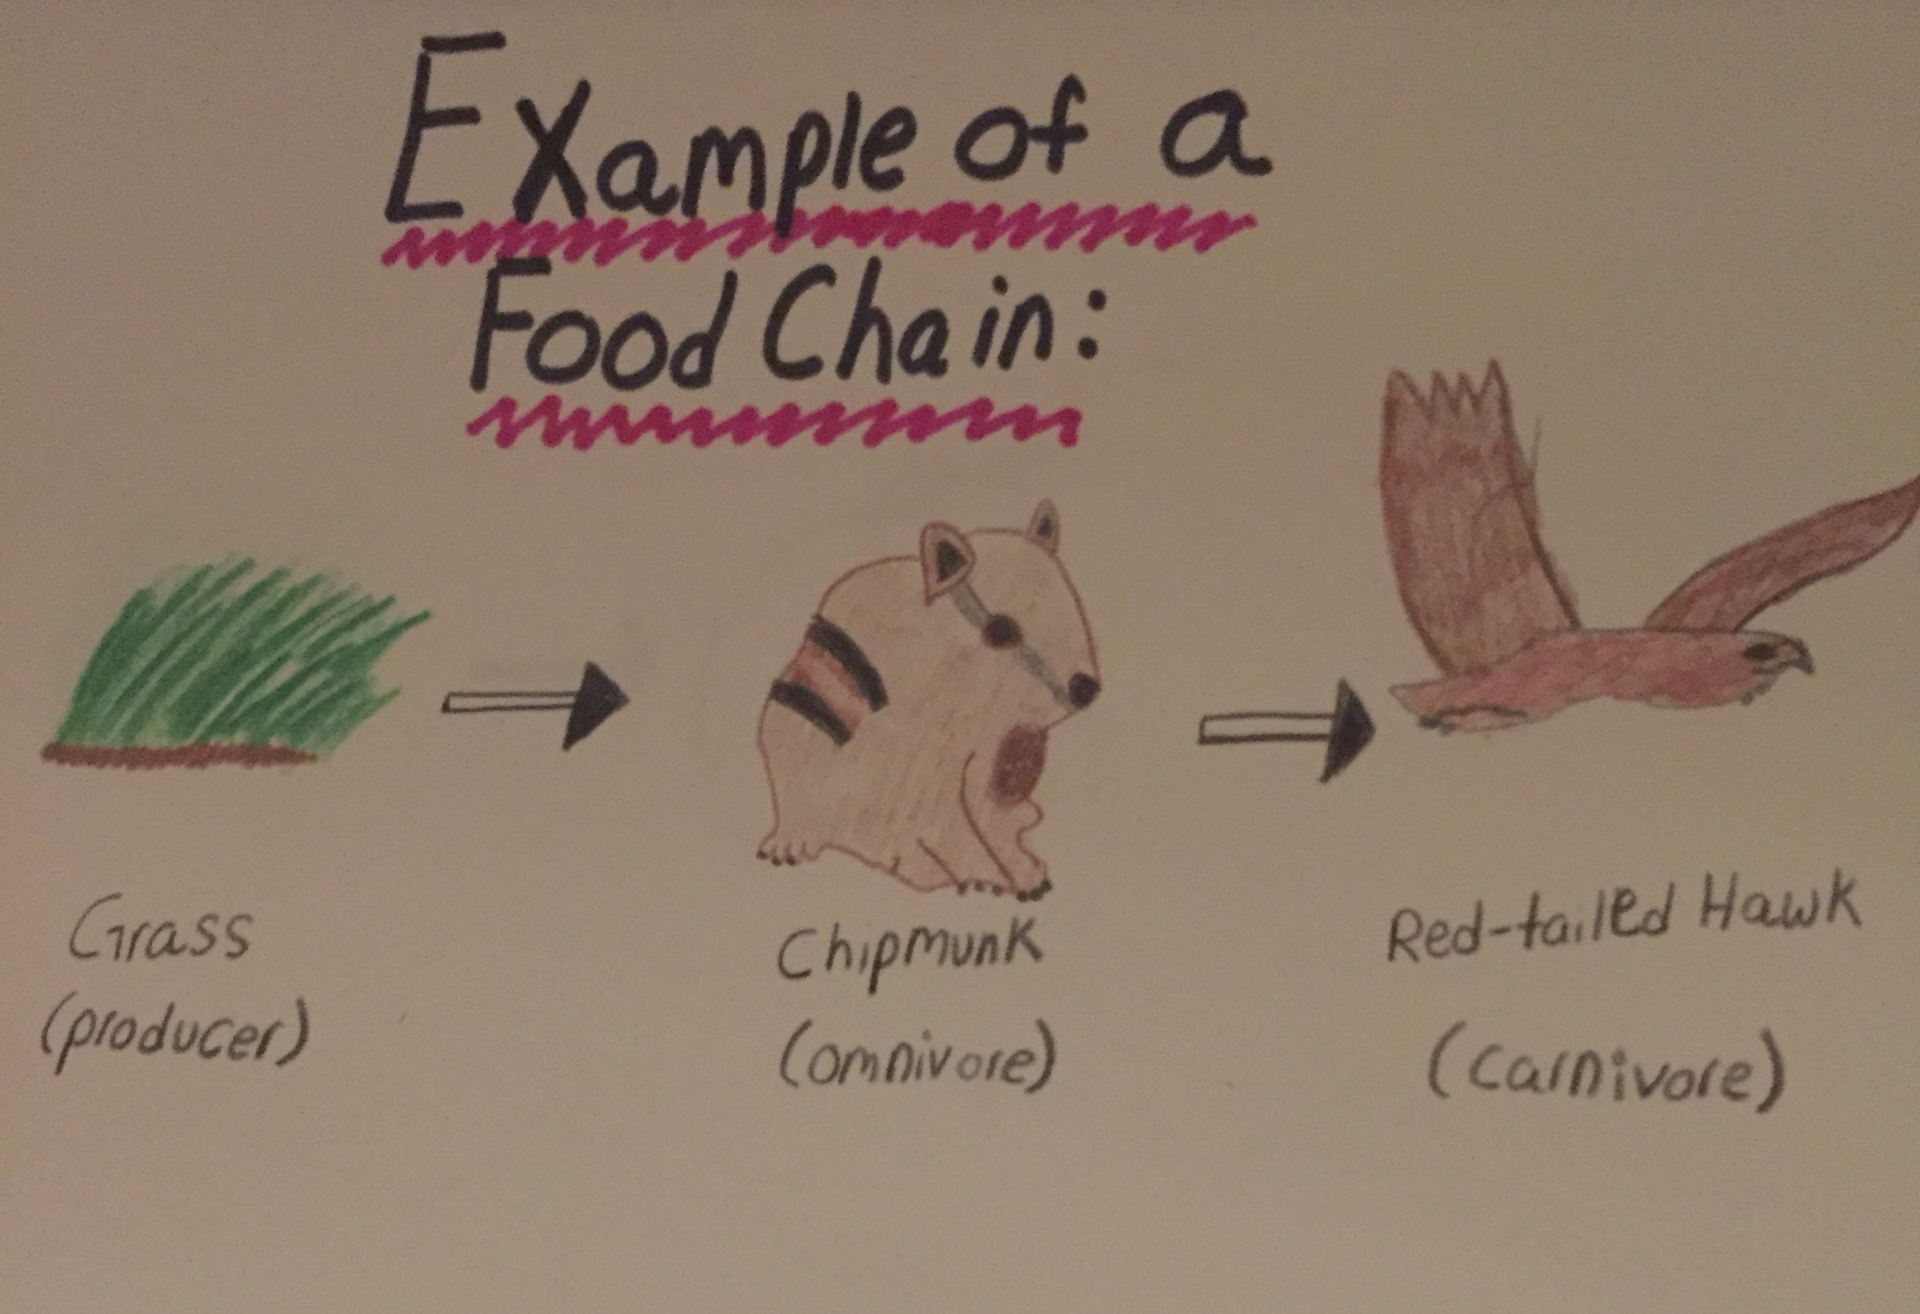 Food Chains Ecologynewstoday